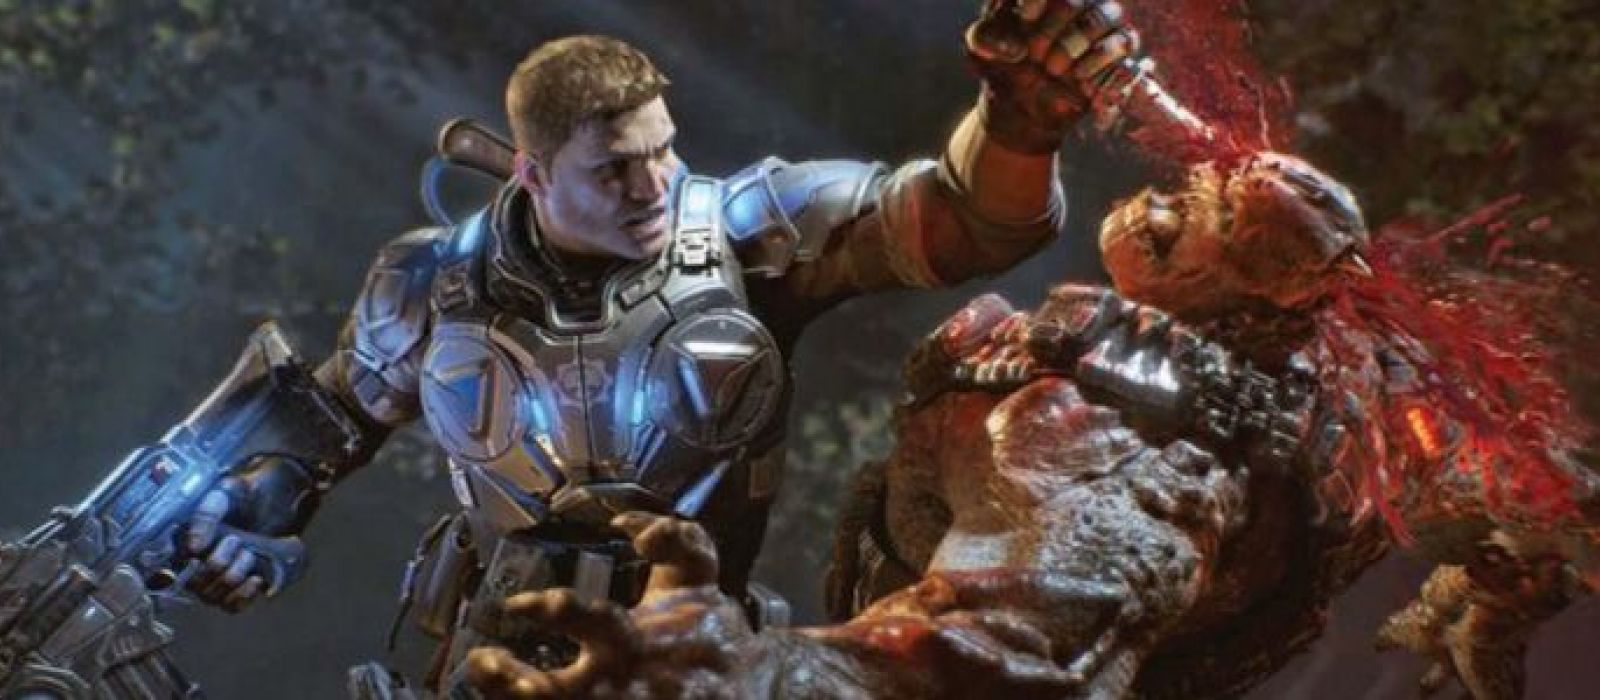 Клифф Блежински оказался в восторге от трейлера Gears of War 4